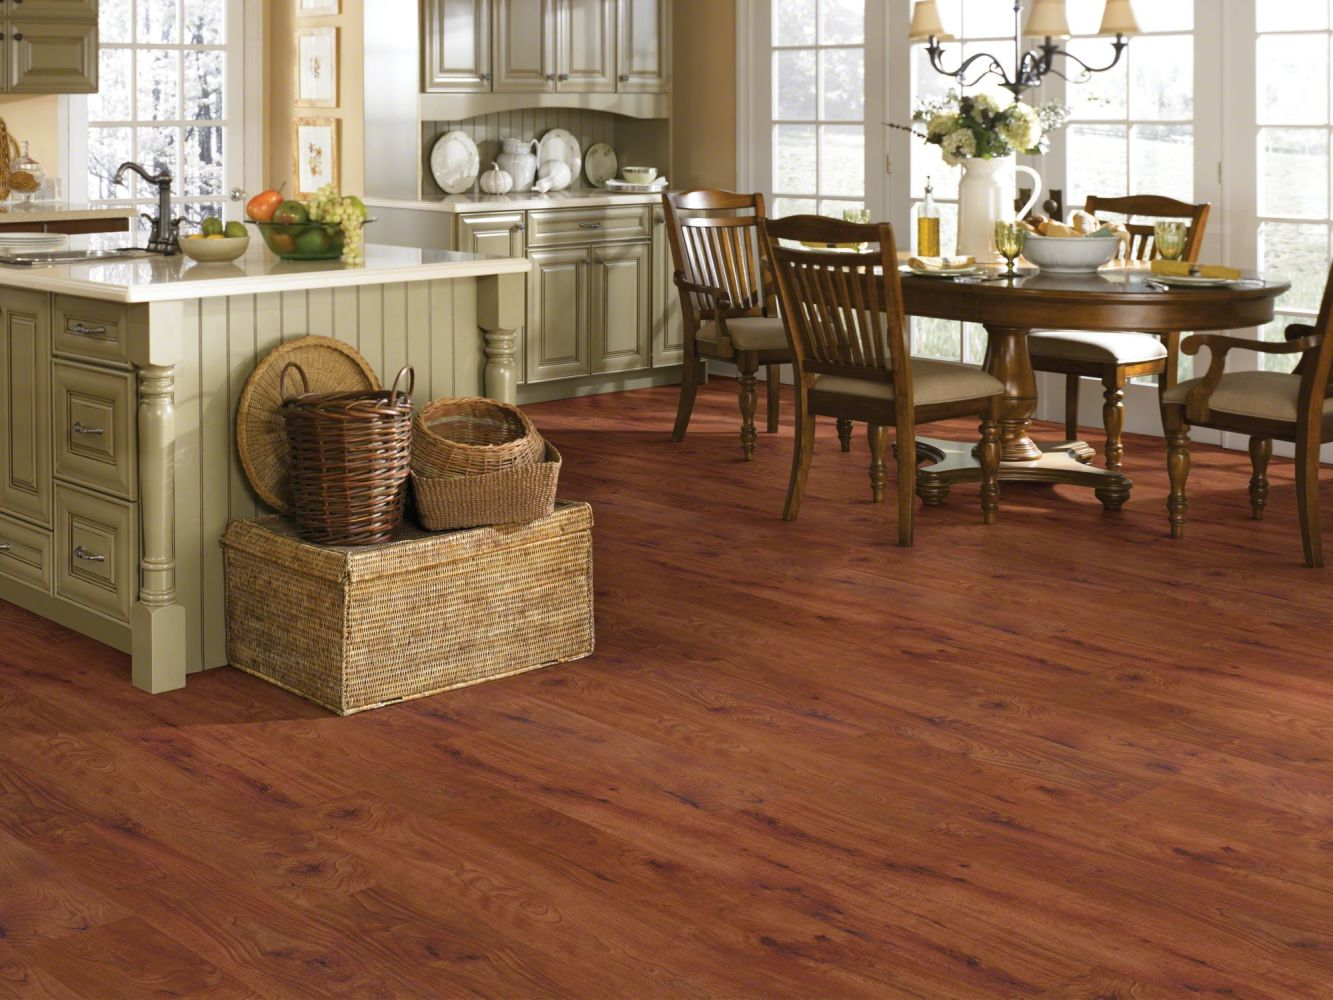 Shaw Floors Vinyl Residential New Market 20 Burlington 00650_0243V